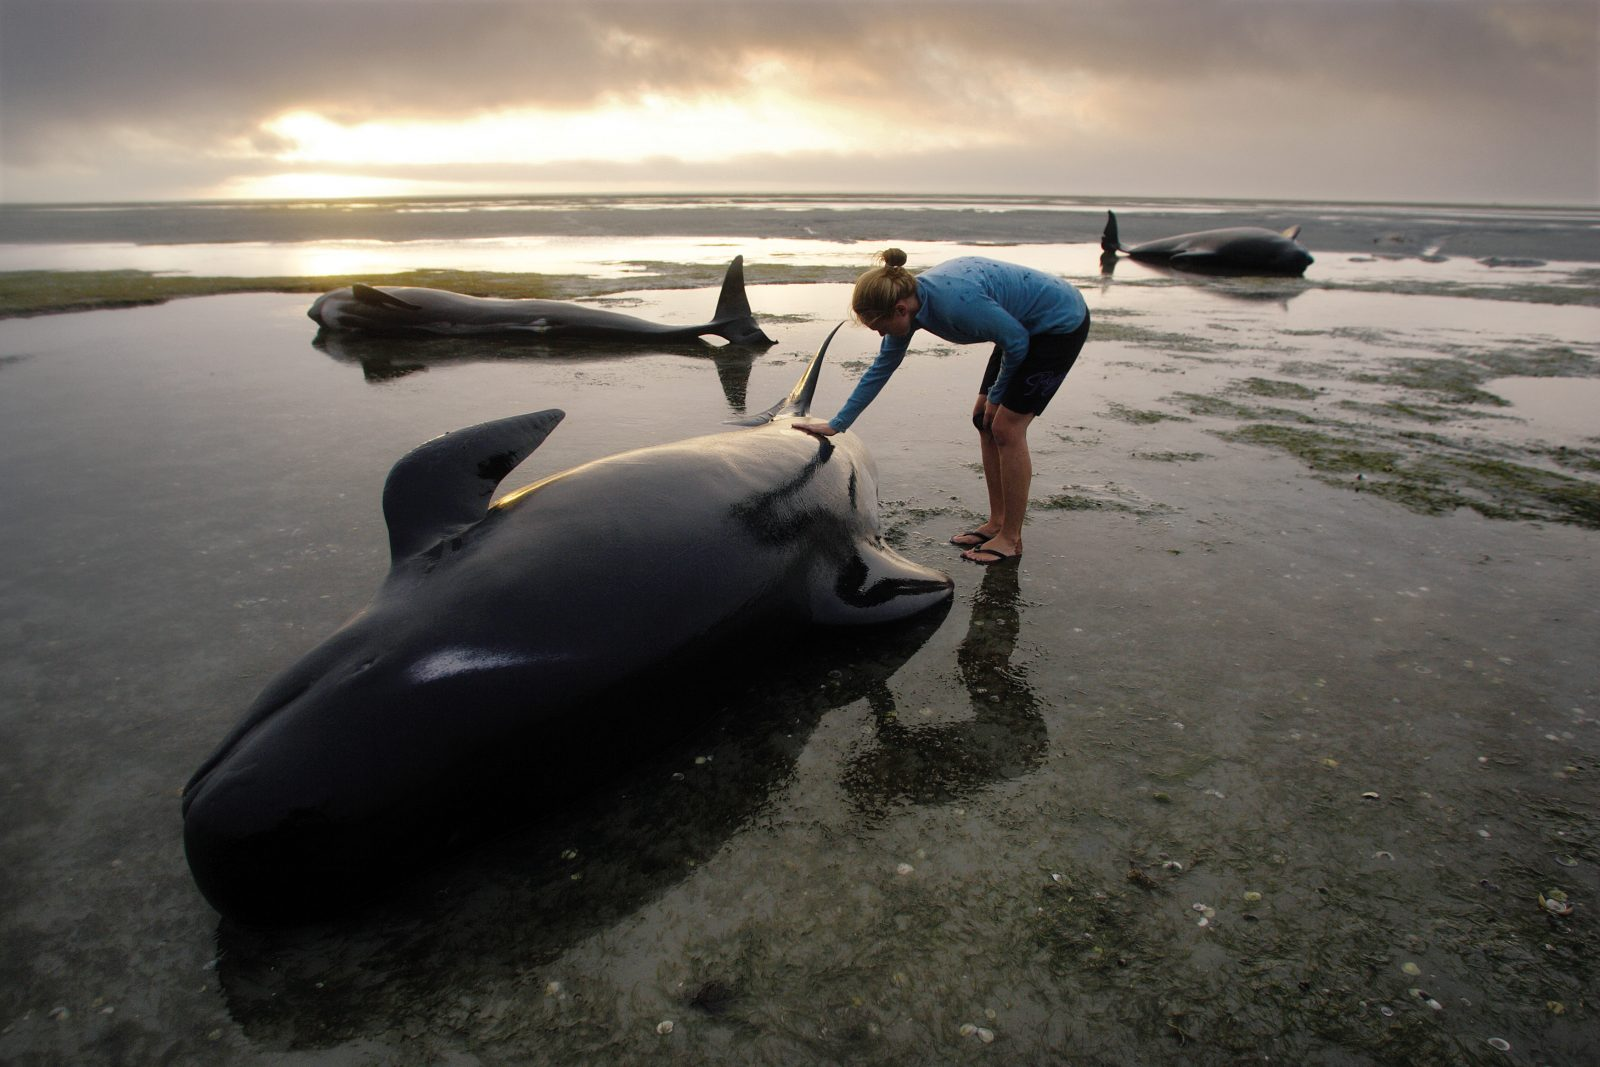 Numerous mass whale strandings have occurred in New Zealand since records began in 1840, and Farewell Spit is one of the most frequent locations for those involving long-finned pilot whales. On the first evening, I initially photographed, and then joined, teams of volunteers cooling and hydrating 84 whales and preparing them for the fast-rising midnight tide. DOC cleared the beach at dusk as it was too dangerous to stay in the shallows. I slept in the car, and before dawn went back to find just 14 whales left on the sand. Most of the other whales had self-rescued, a rare occurrence. The light on that second day was extraordinarily hazy, filtering through dark cloud and fine drizzle. Later that morning, dozens of people waded chest-deep into the sea at Pakawau to stop a small group of the surviving whales trying to beach again. DOC staff would spend another two days shadowing the fragmented pod, refloating them three more times before the whales moved to the safety of deep water. For several hundred committed, caring people, February 4, 2011 will be remembered as the day they saved the whales.